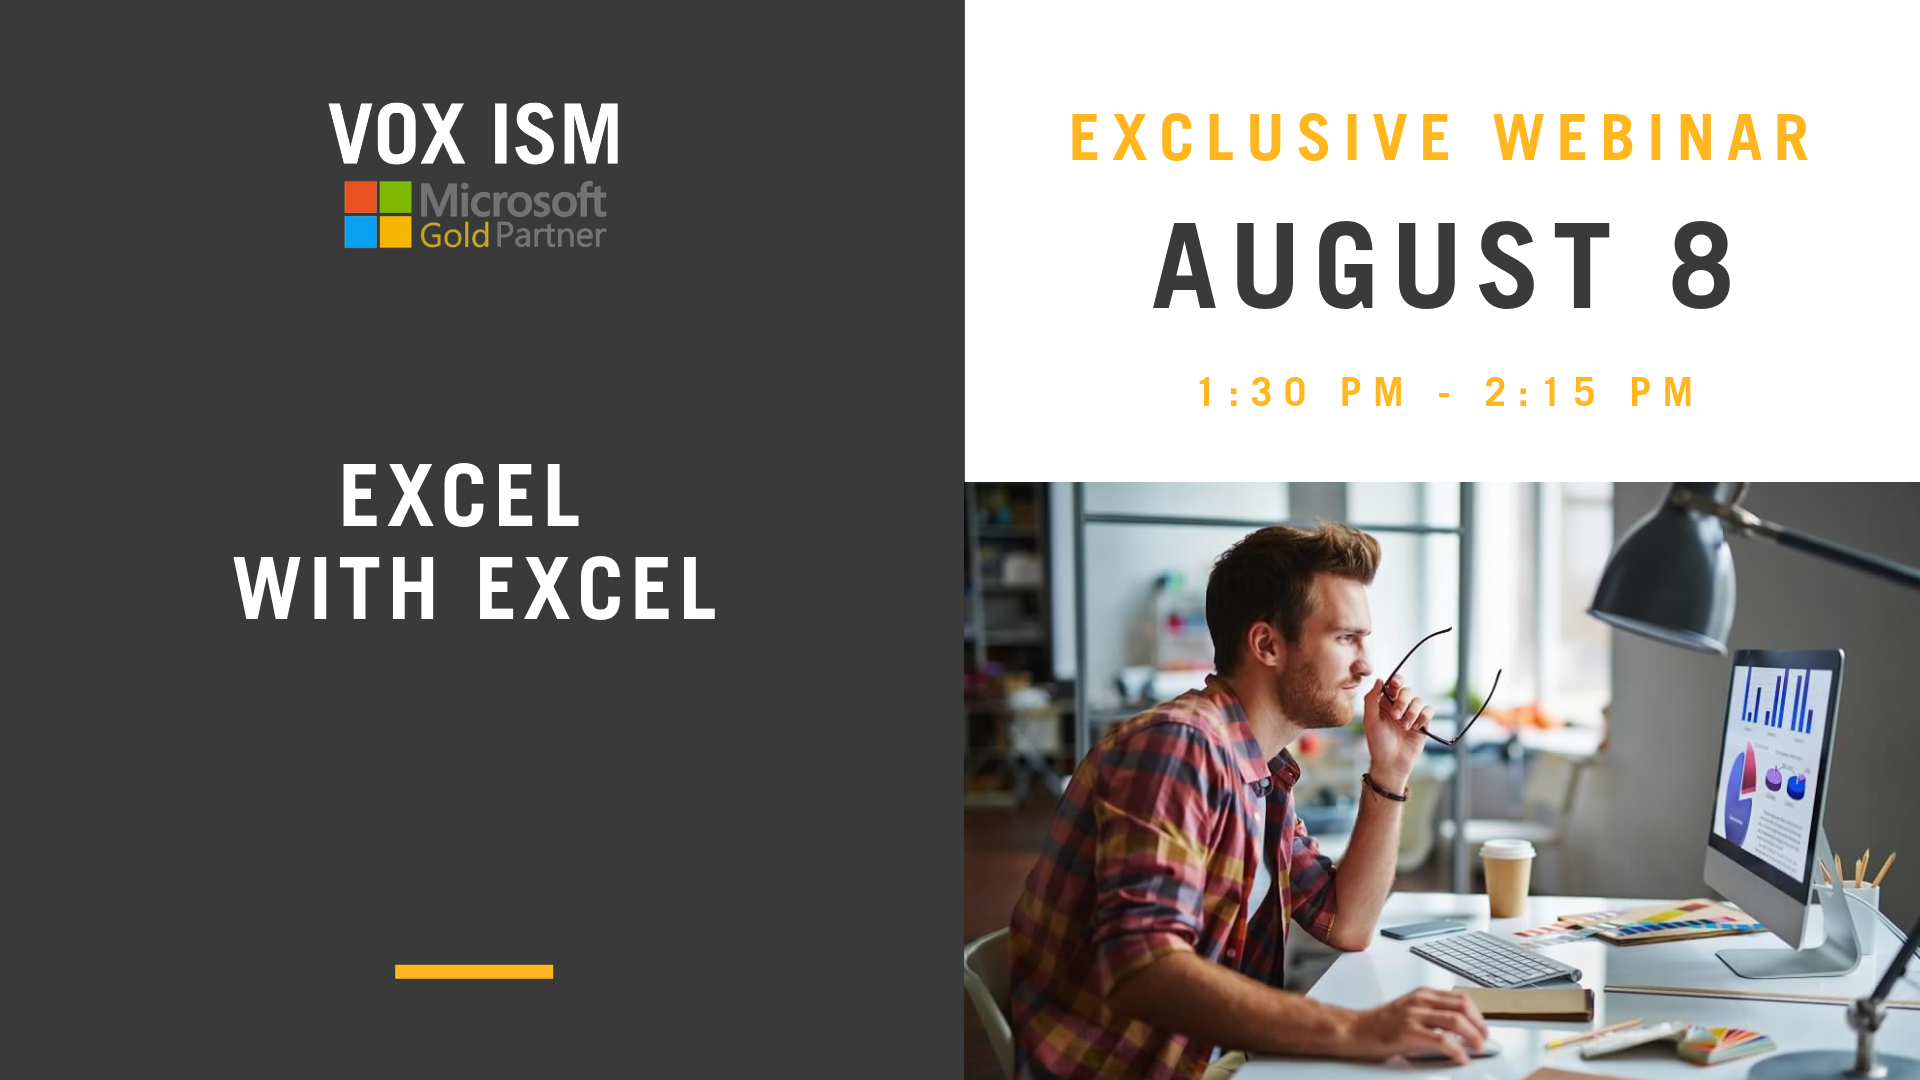 Excel with Excel - August 8 - Webinar - VOX ISM